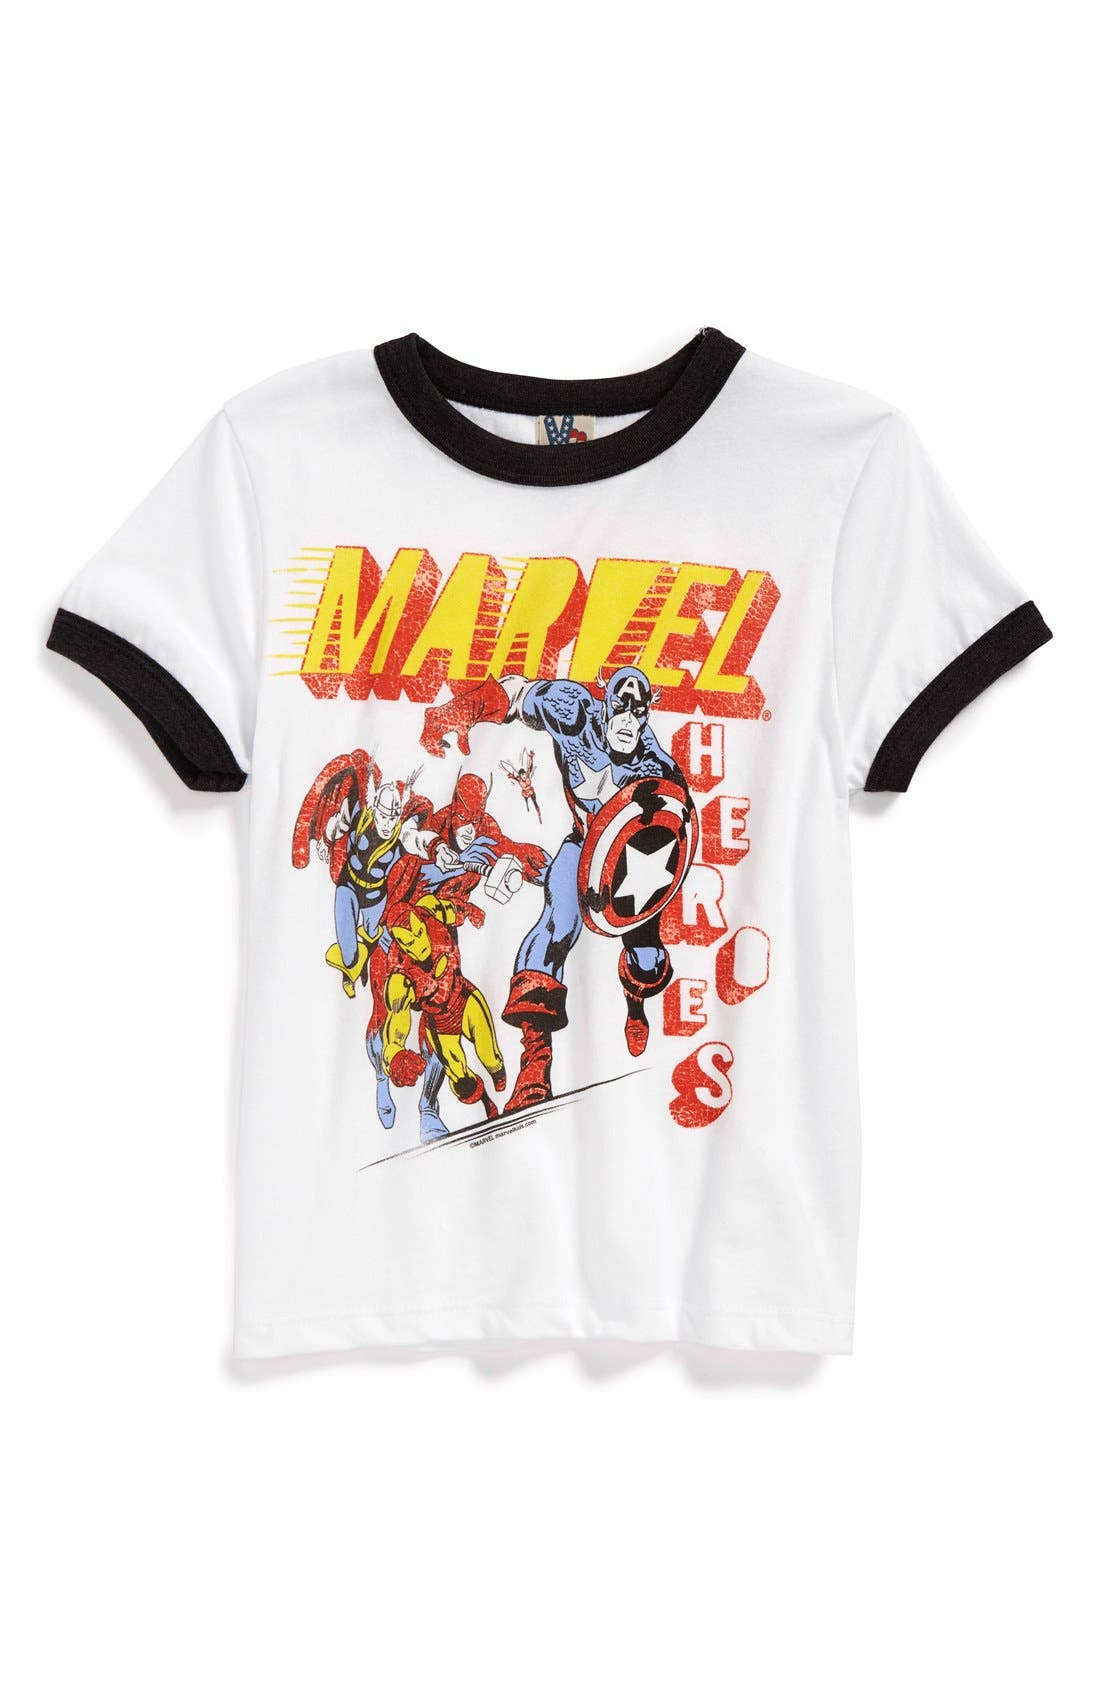 Alternate Image 1 Selected - Junk Food 'Marvel® Heroes' Graphic T-Shirt (Toddler Boys)